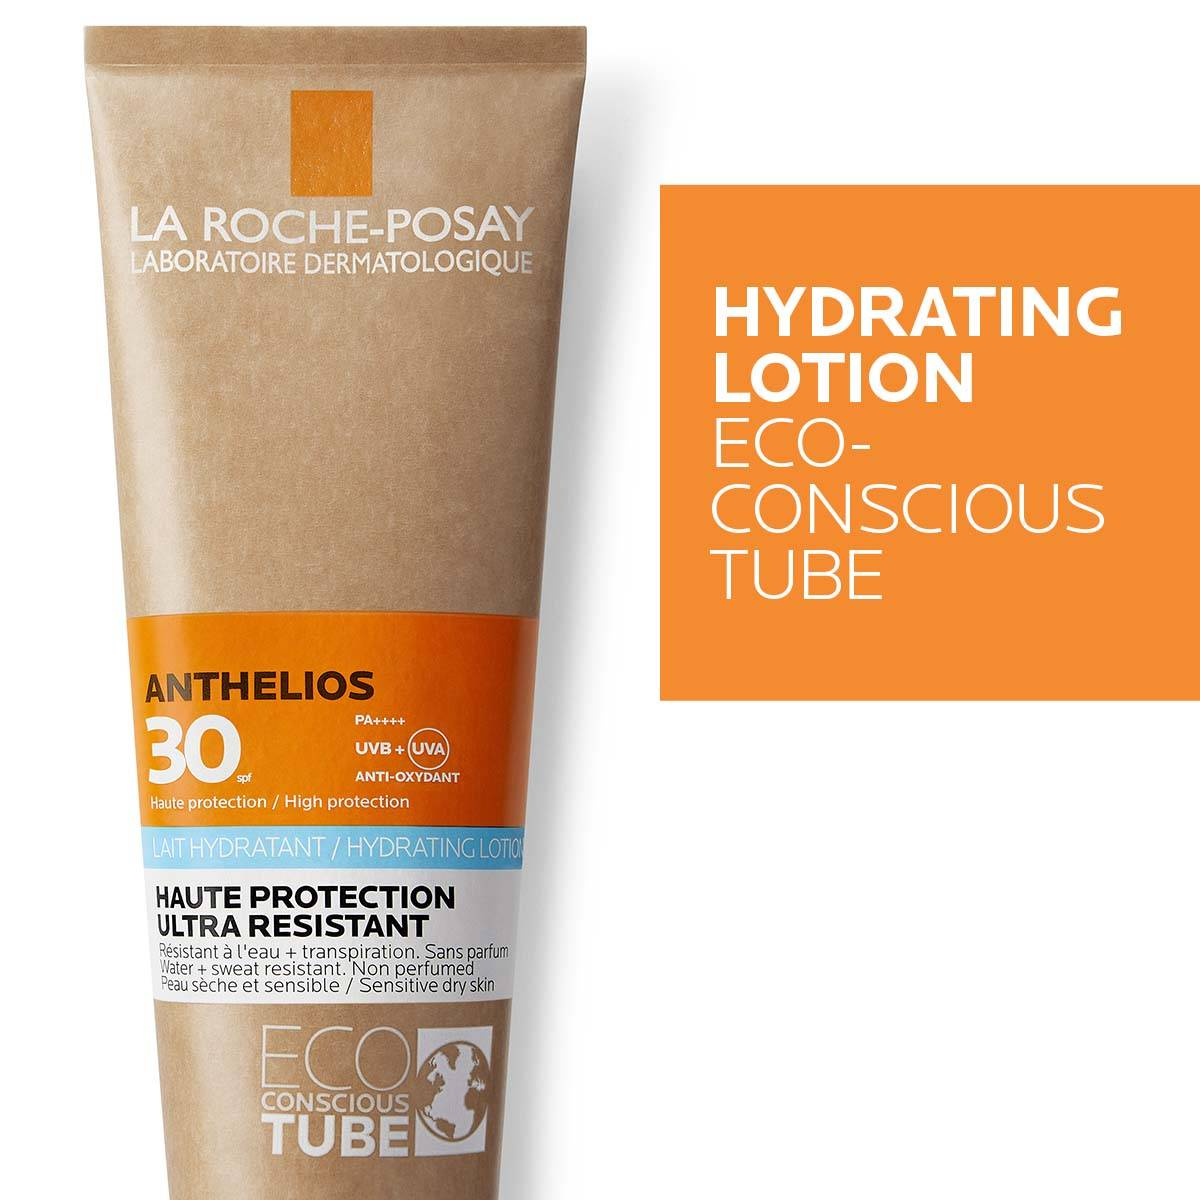 ANTHELIOS ECO-CONSCIOUS HYDRATING LOTION SPF30 ΑΝΤΗΛΙΑΚΟ ΣΩΜΑΤΟΣ